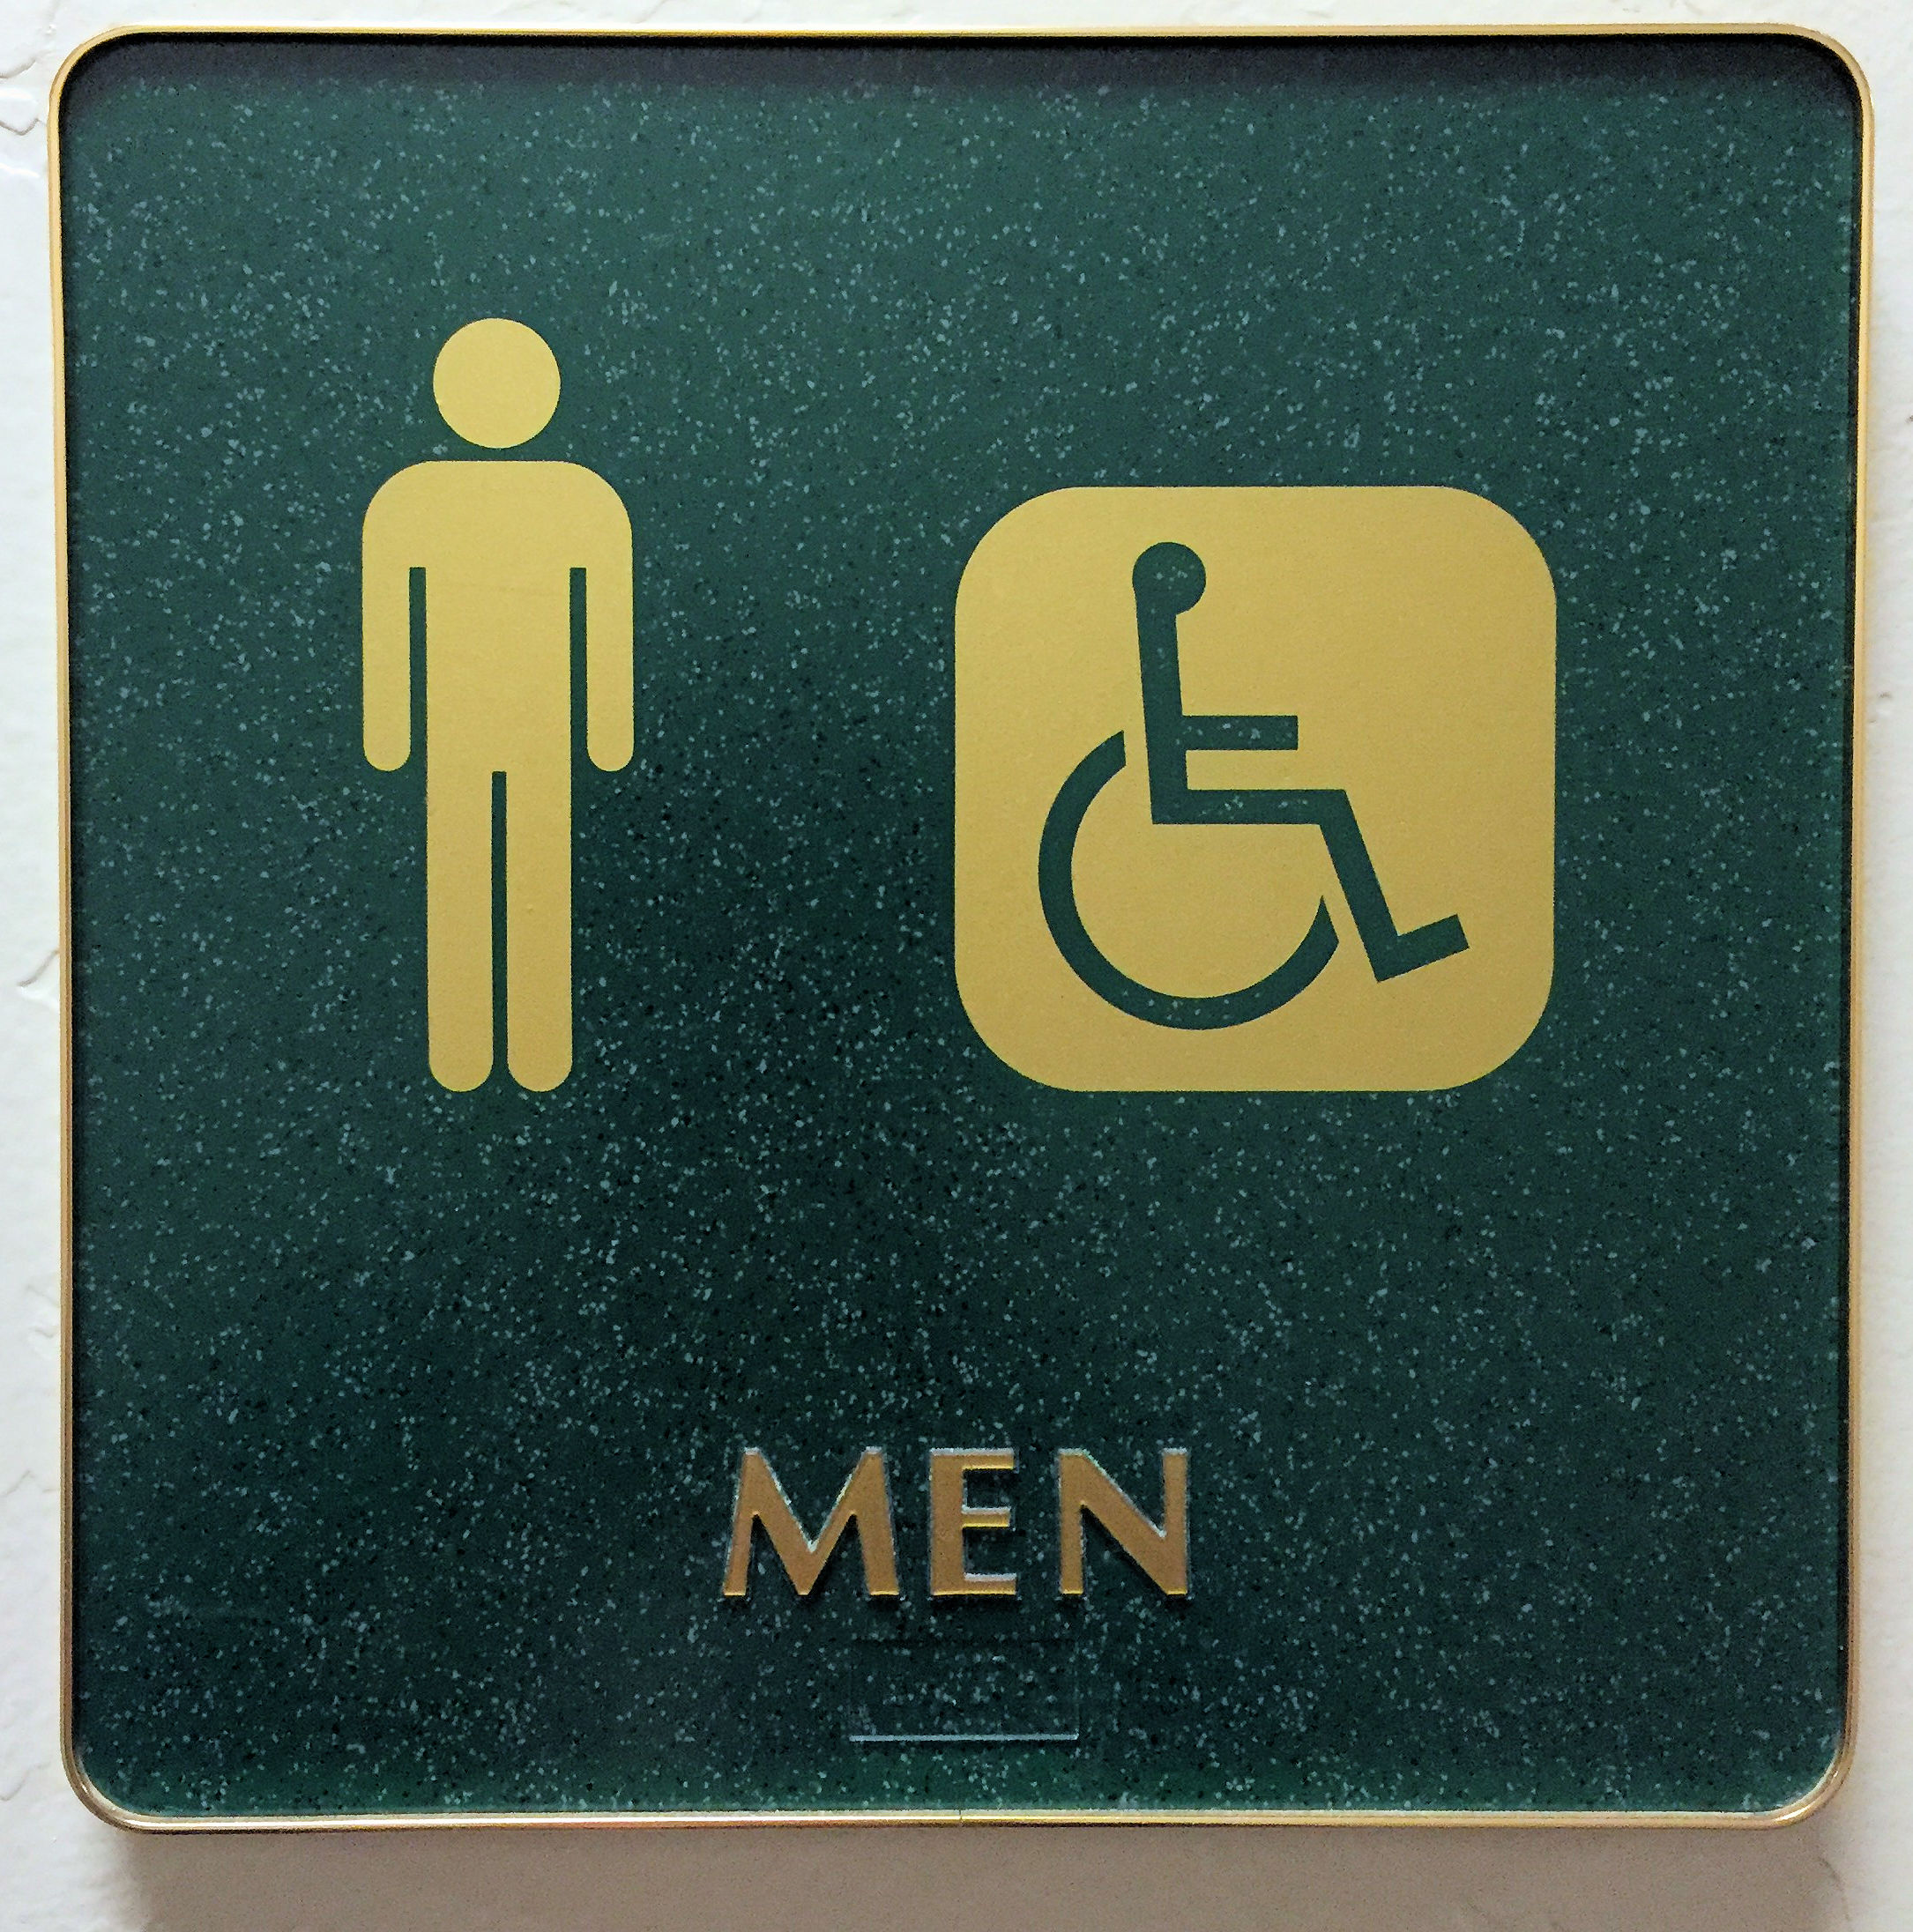 MEN- a sign for a restroom